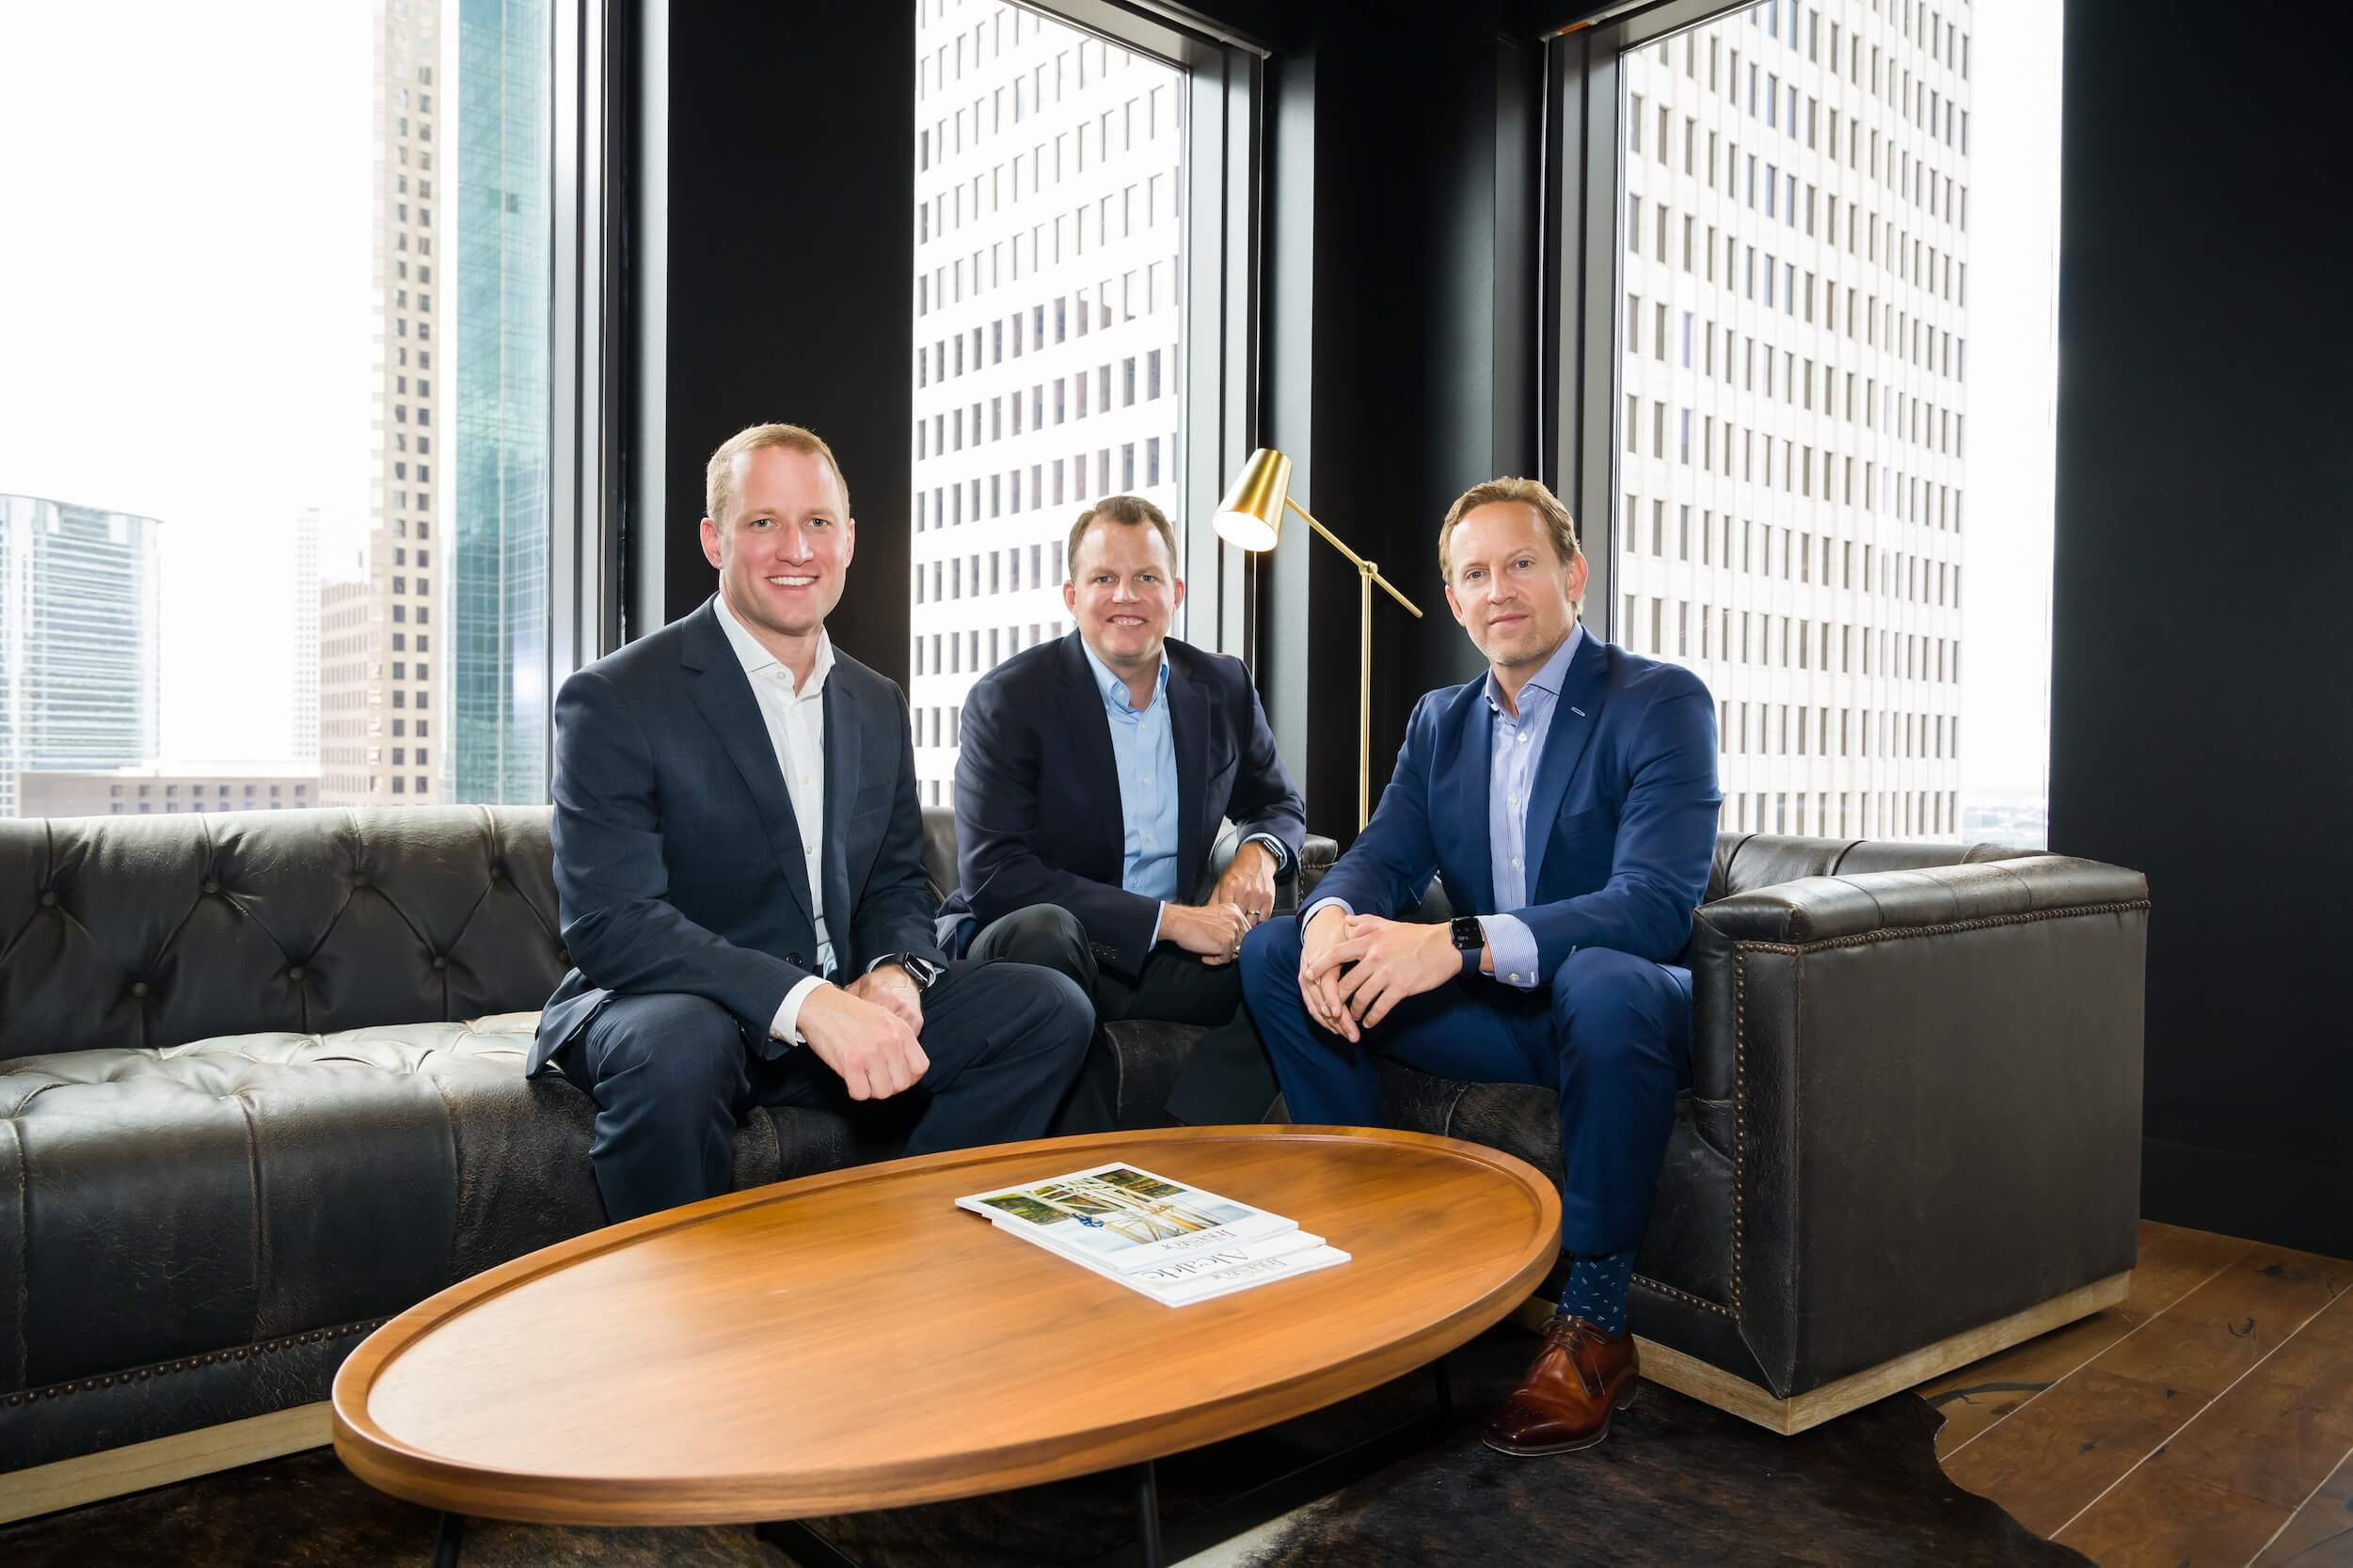 Three co-workers seated at a coffee table posing for a group photo.